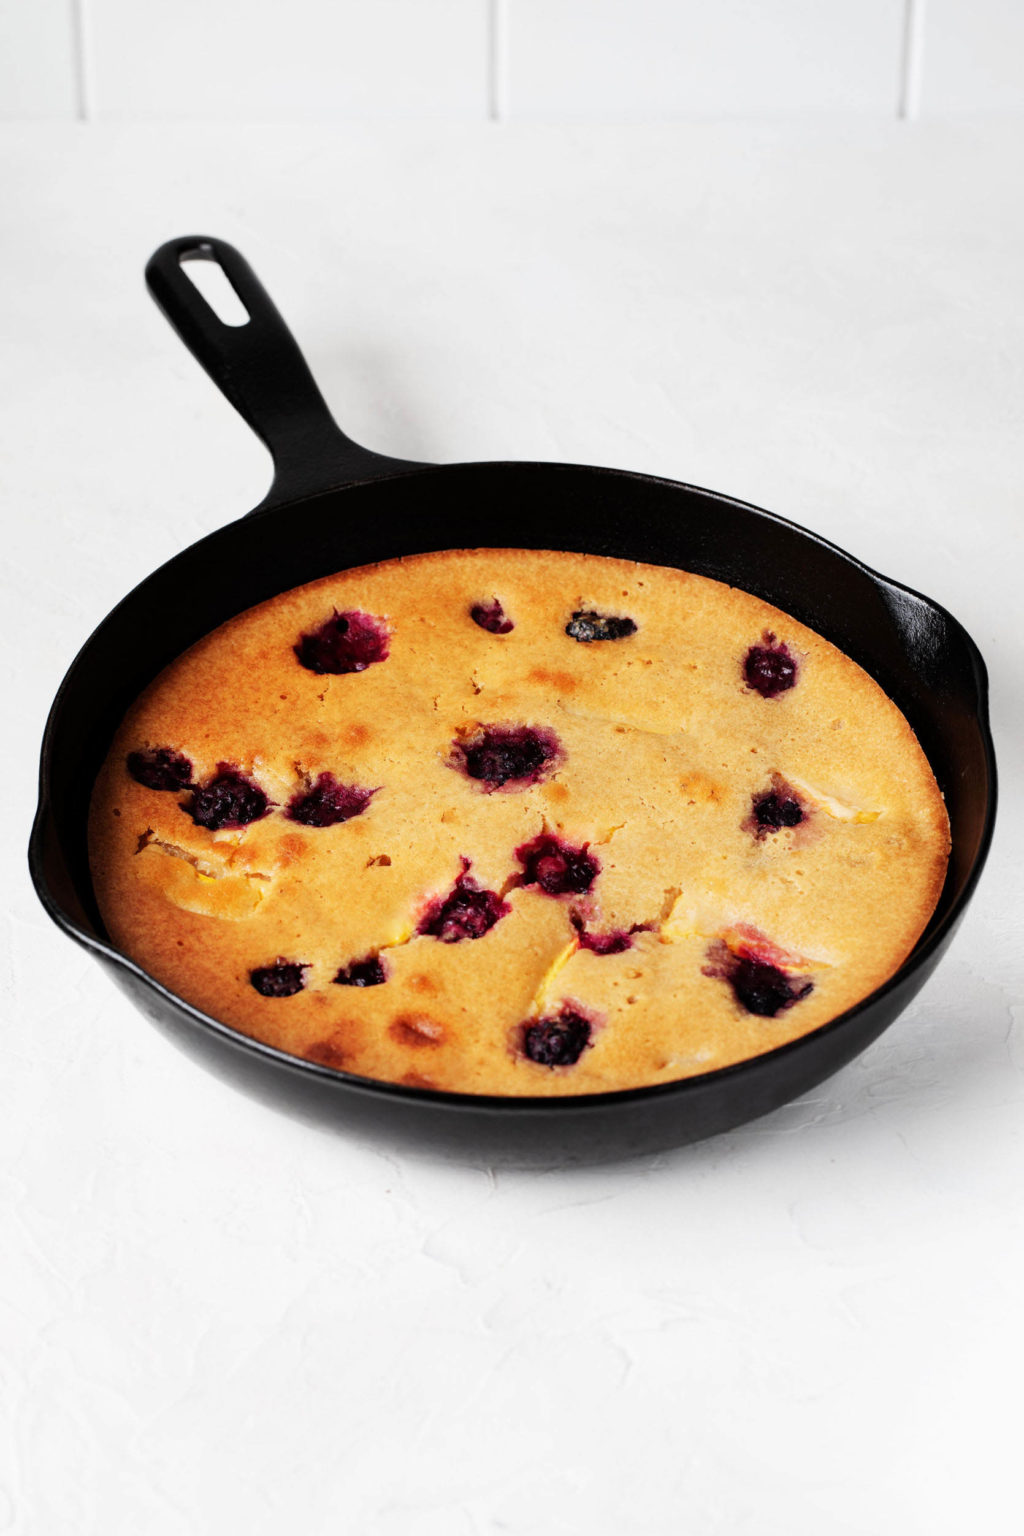 A black, cast iron skillet is filled with a vegan peach blackberry cake.